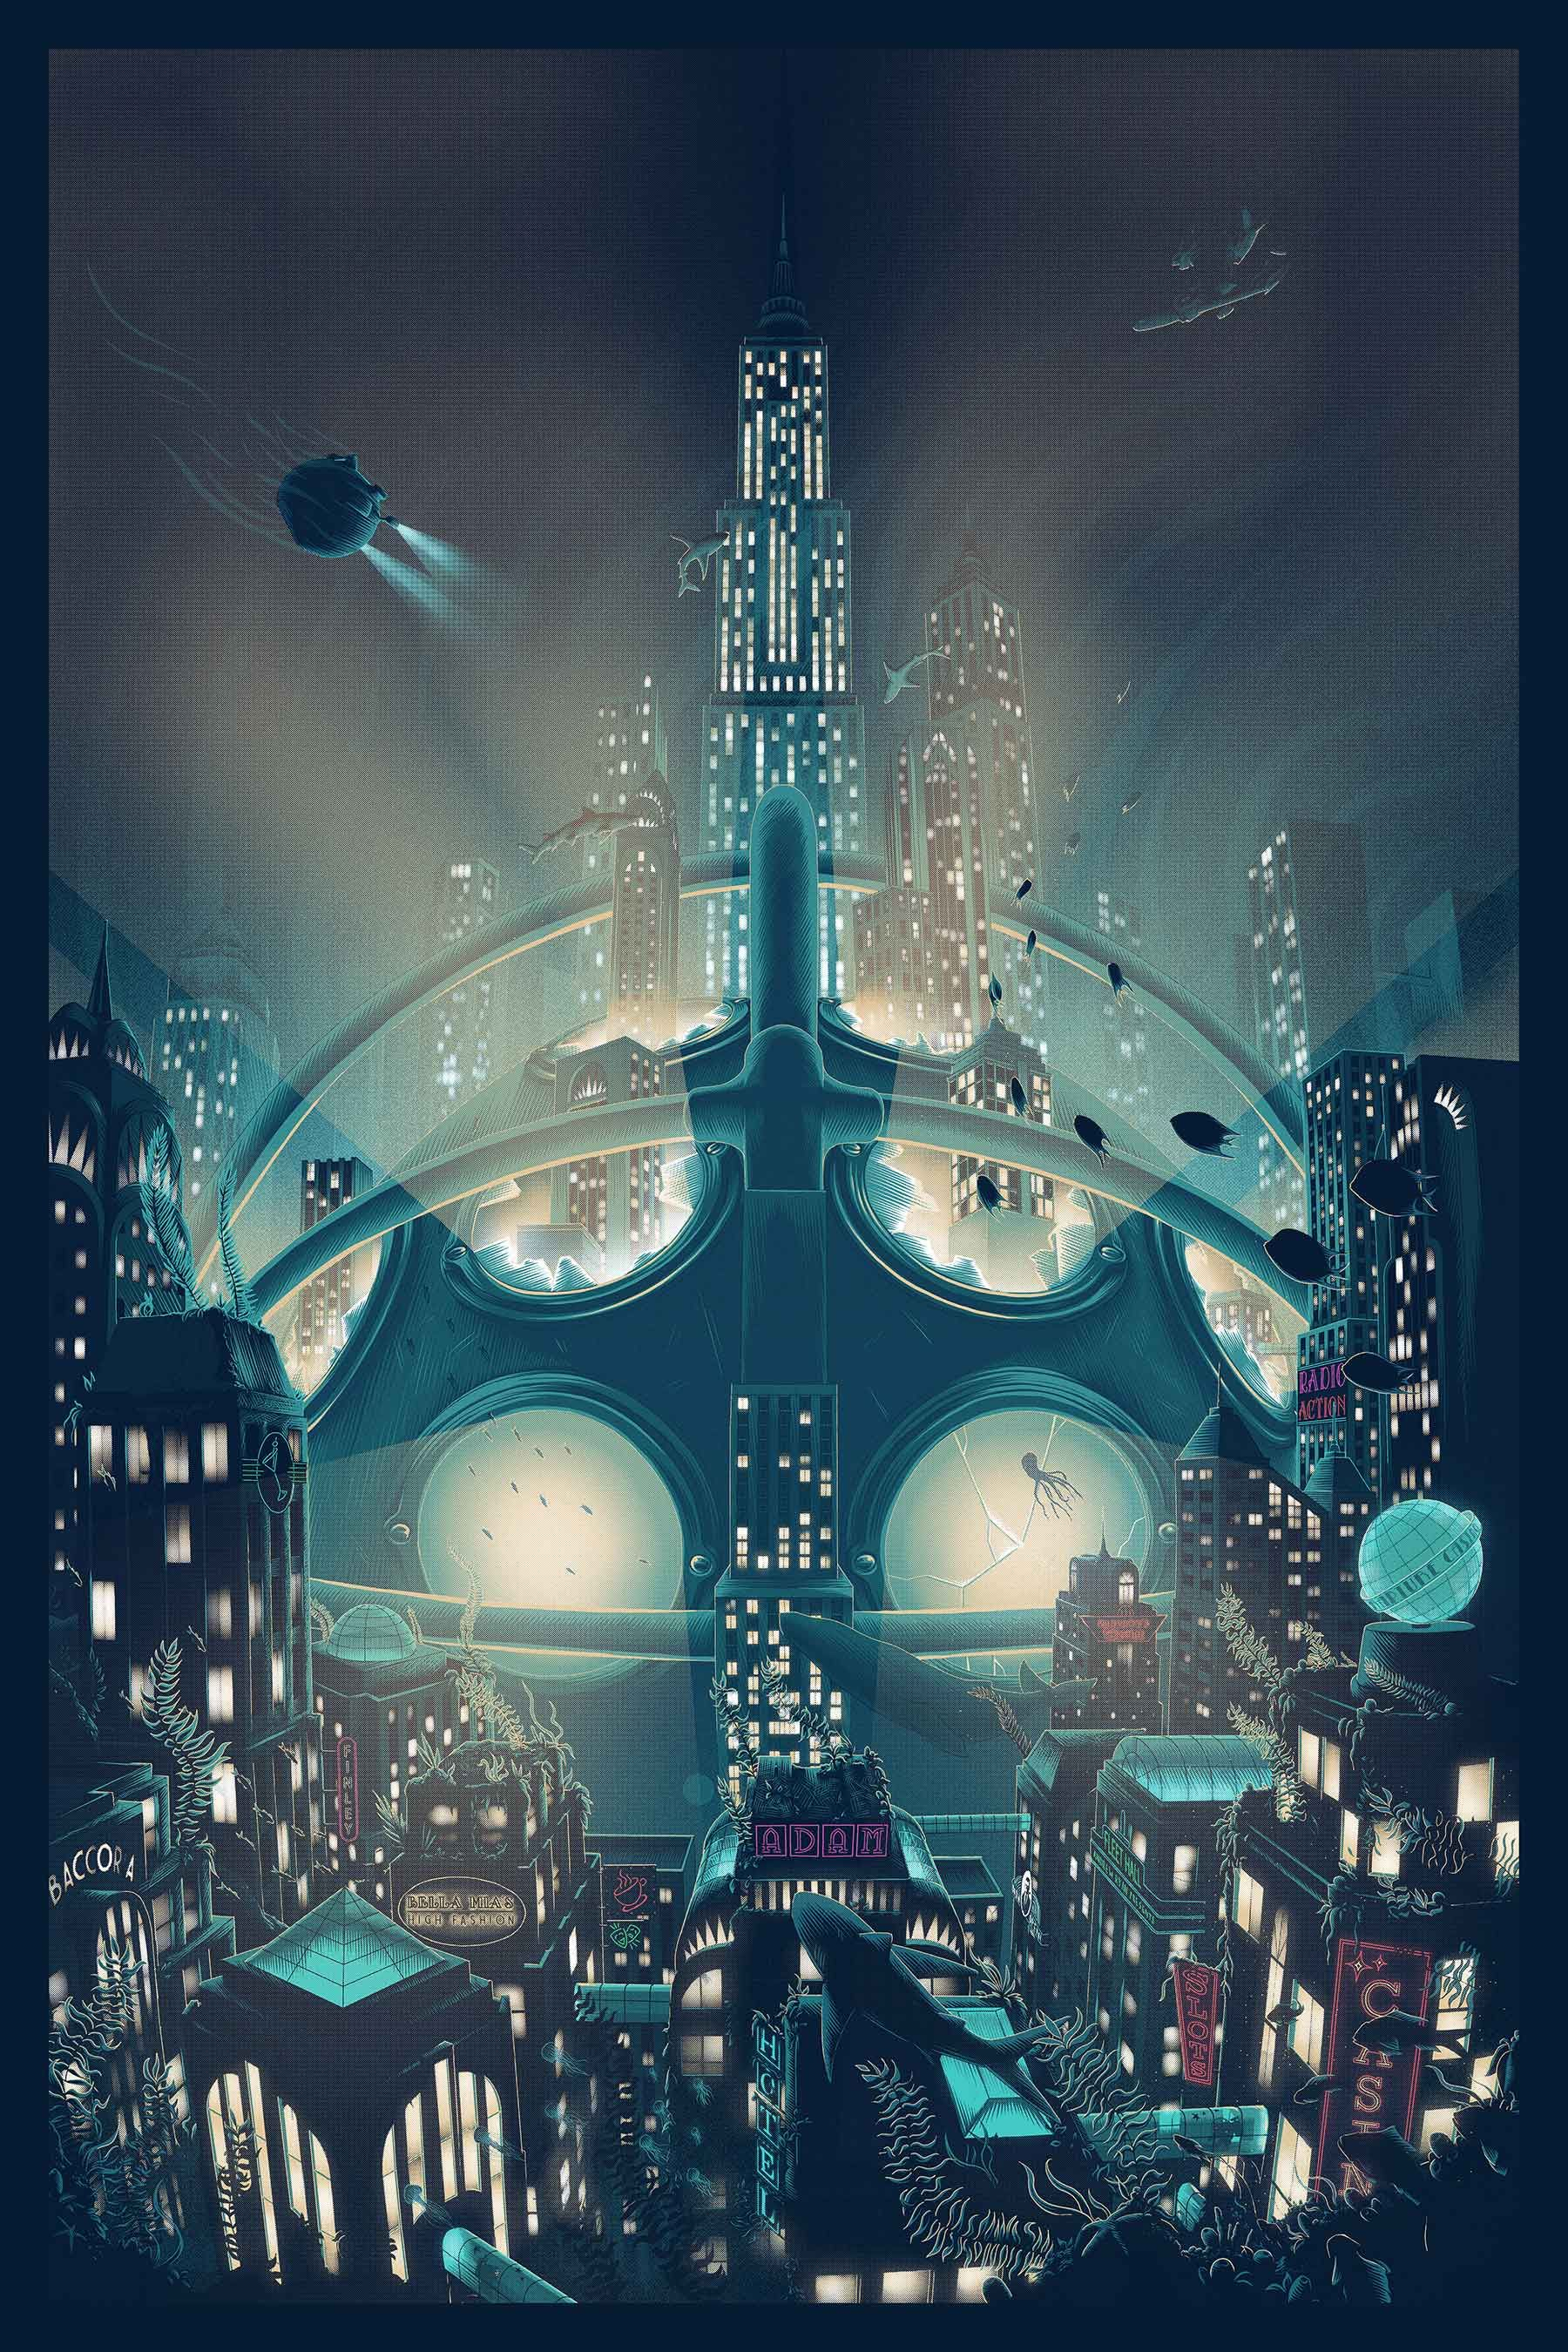 Large Scale Poster For The 2007 Game Bioshock By Irrational Games